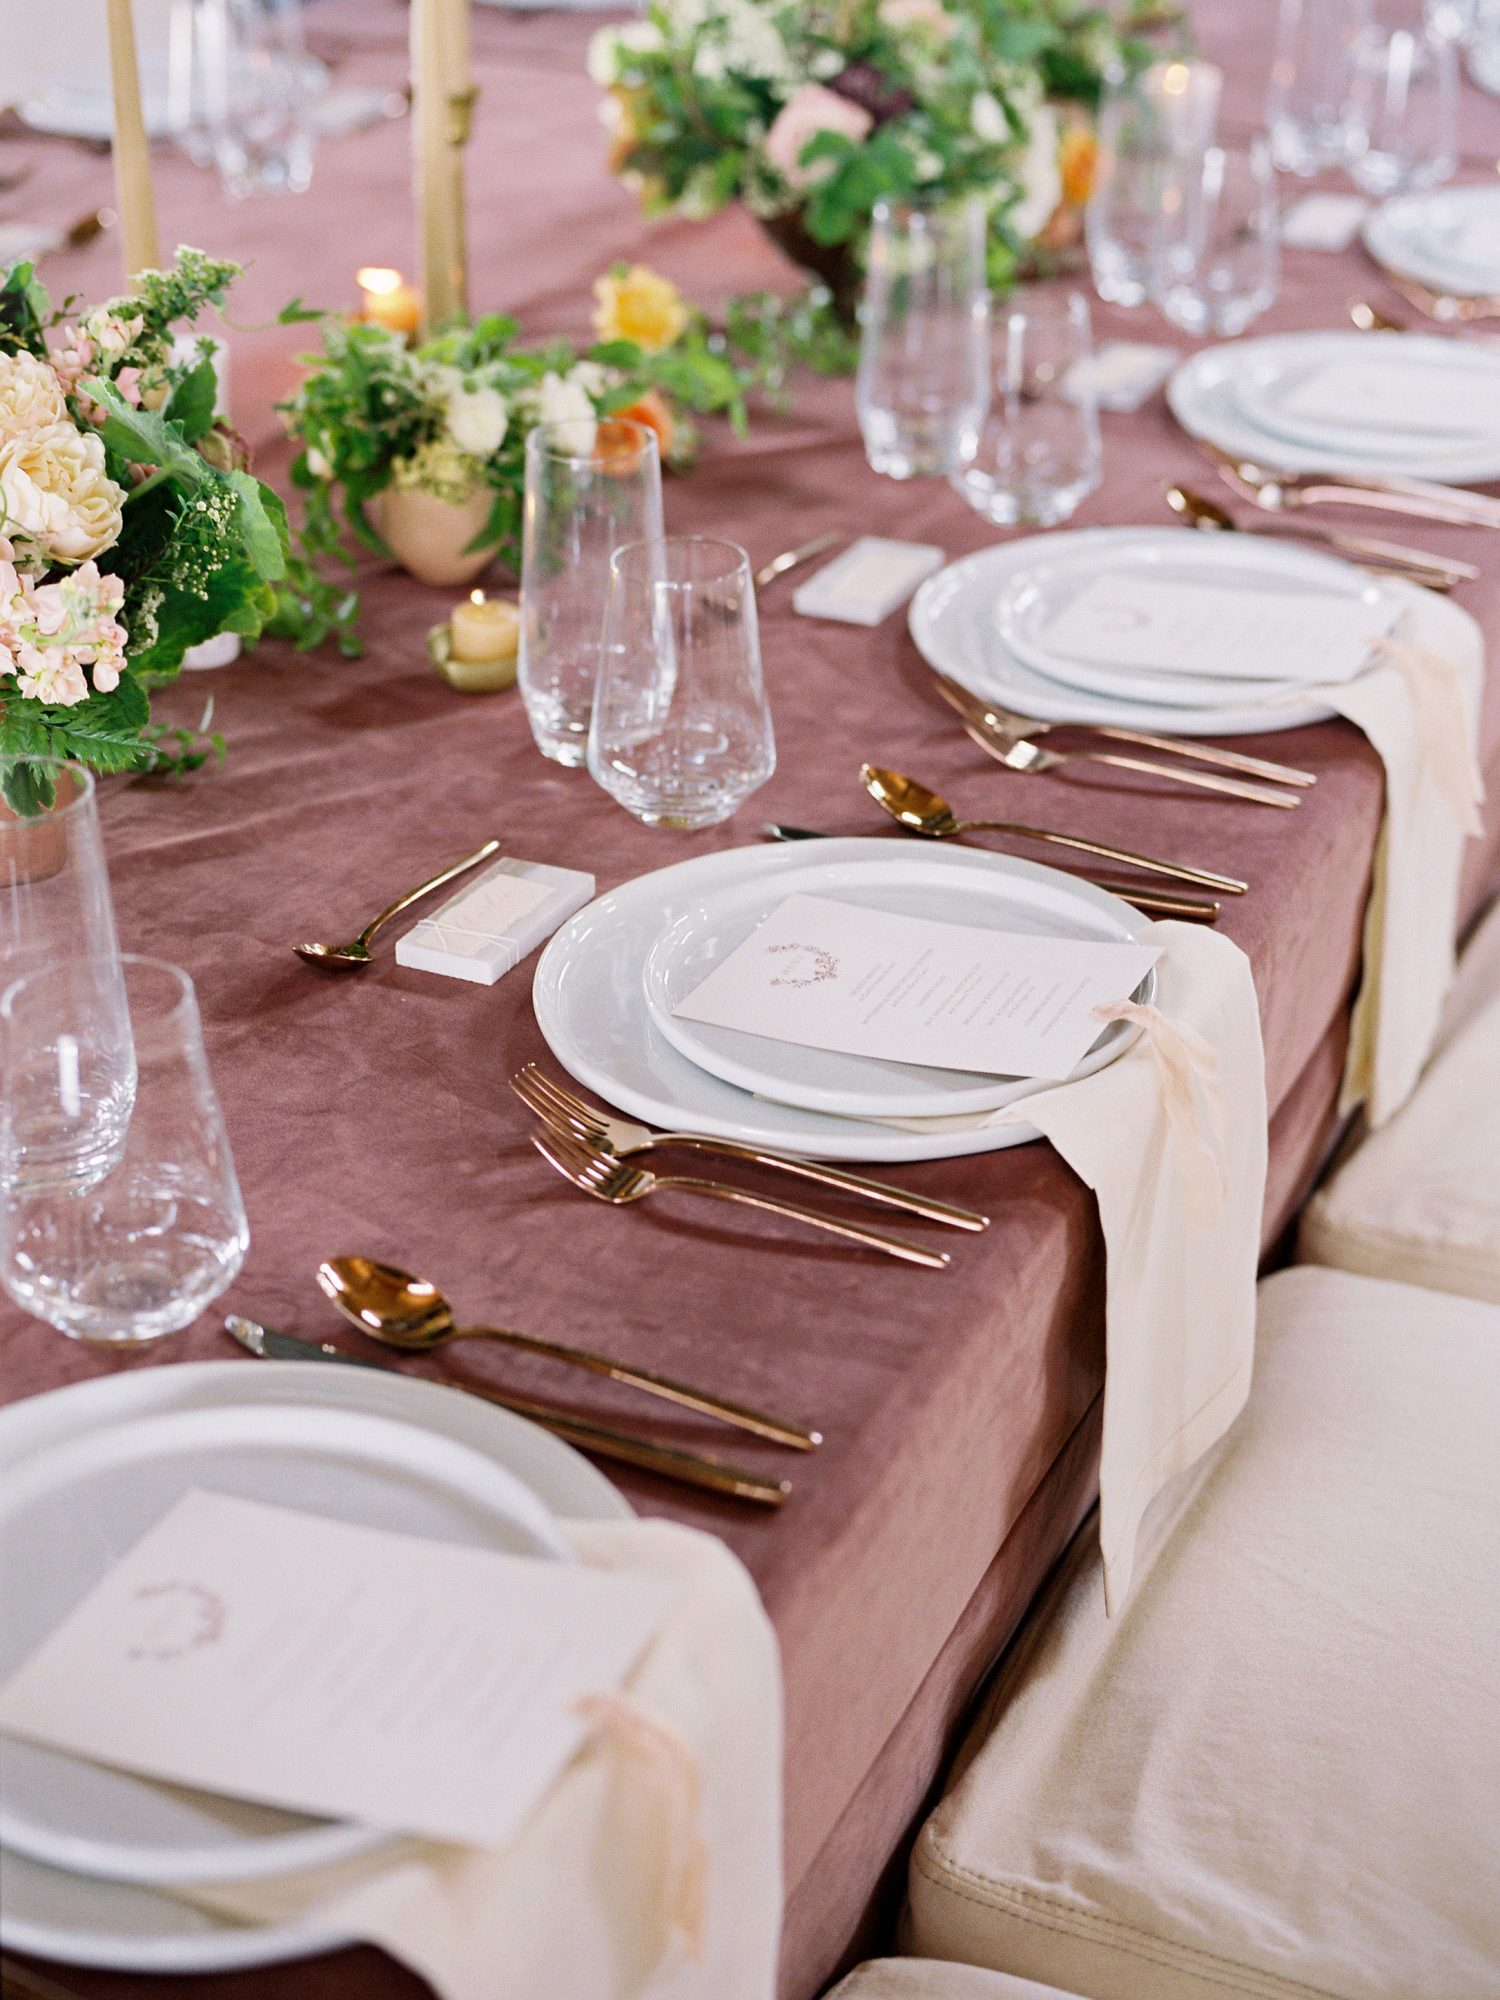 wedding table place setting ceramic dinnerware copper flatware